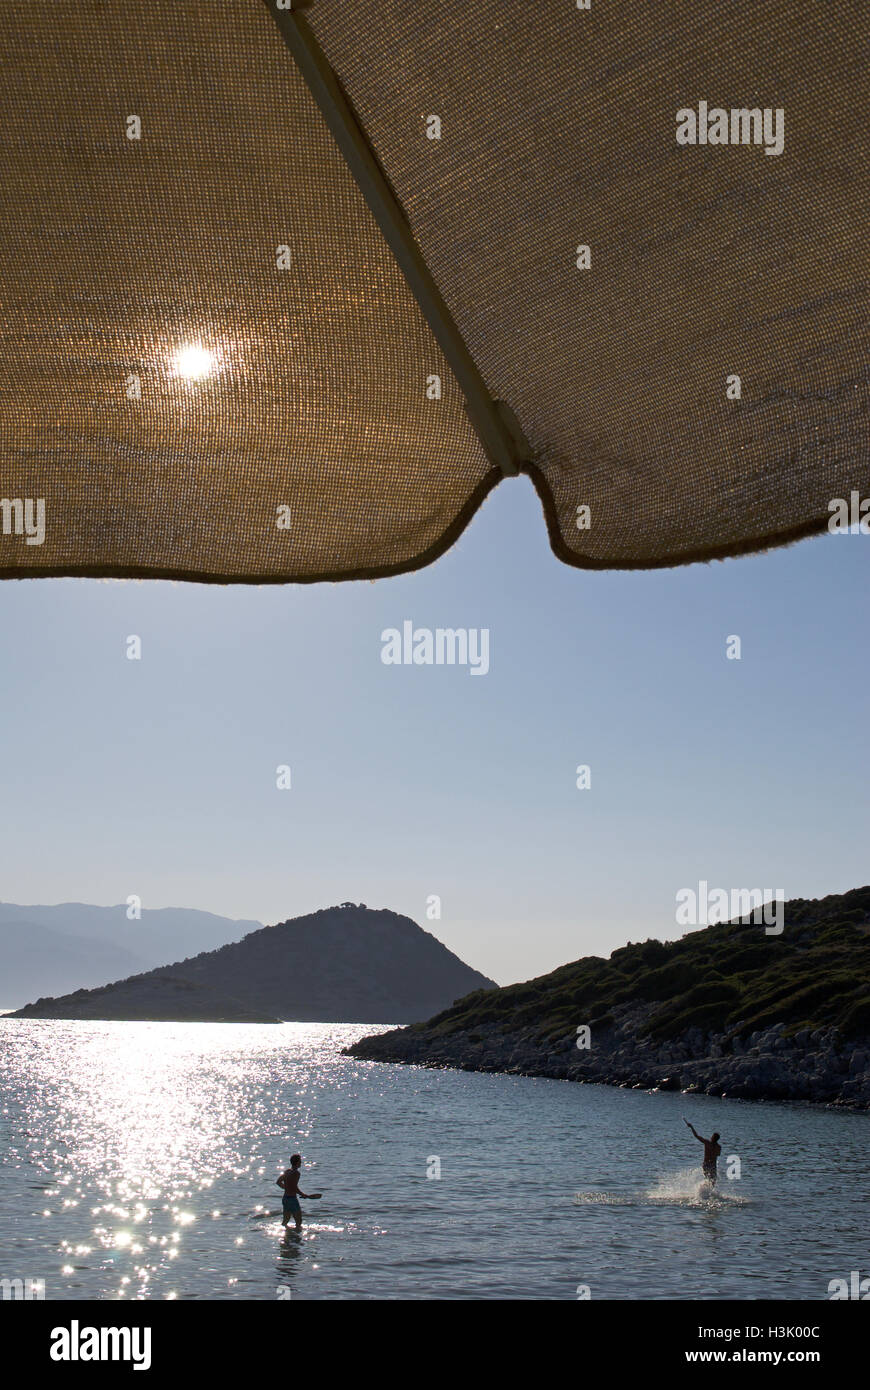 The sun shines through the parasol fabric on a hot summer's day in Samos, Greece. - Stock Image